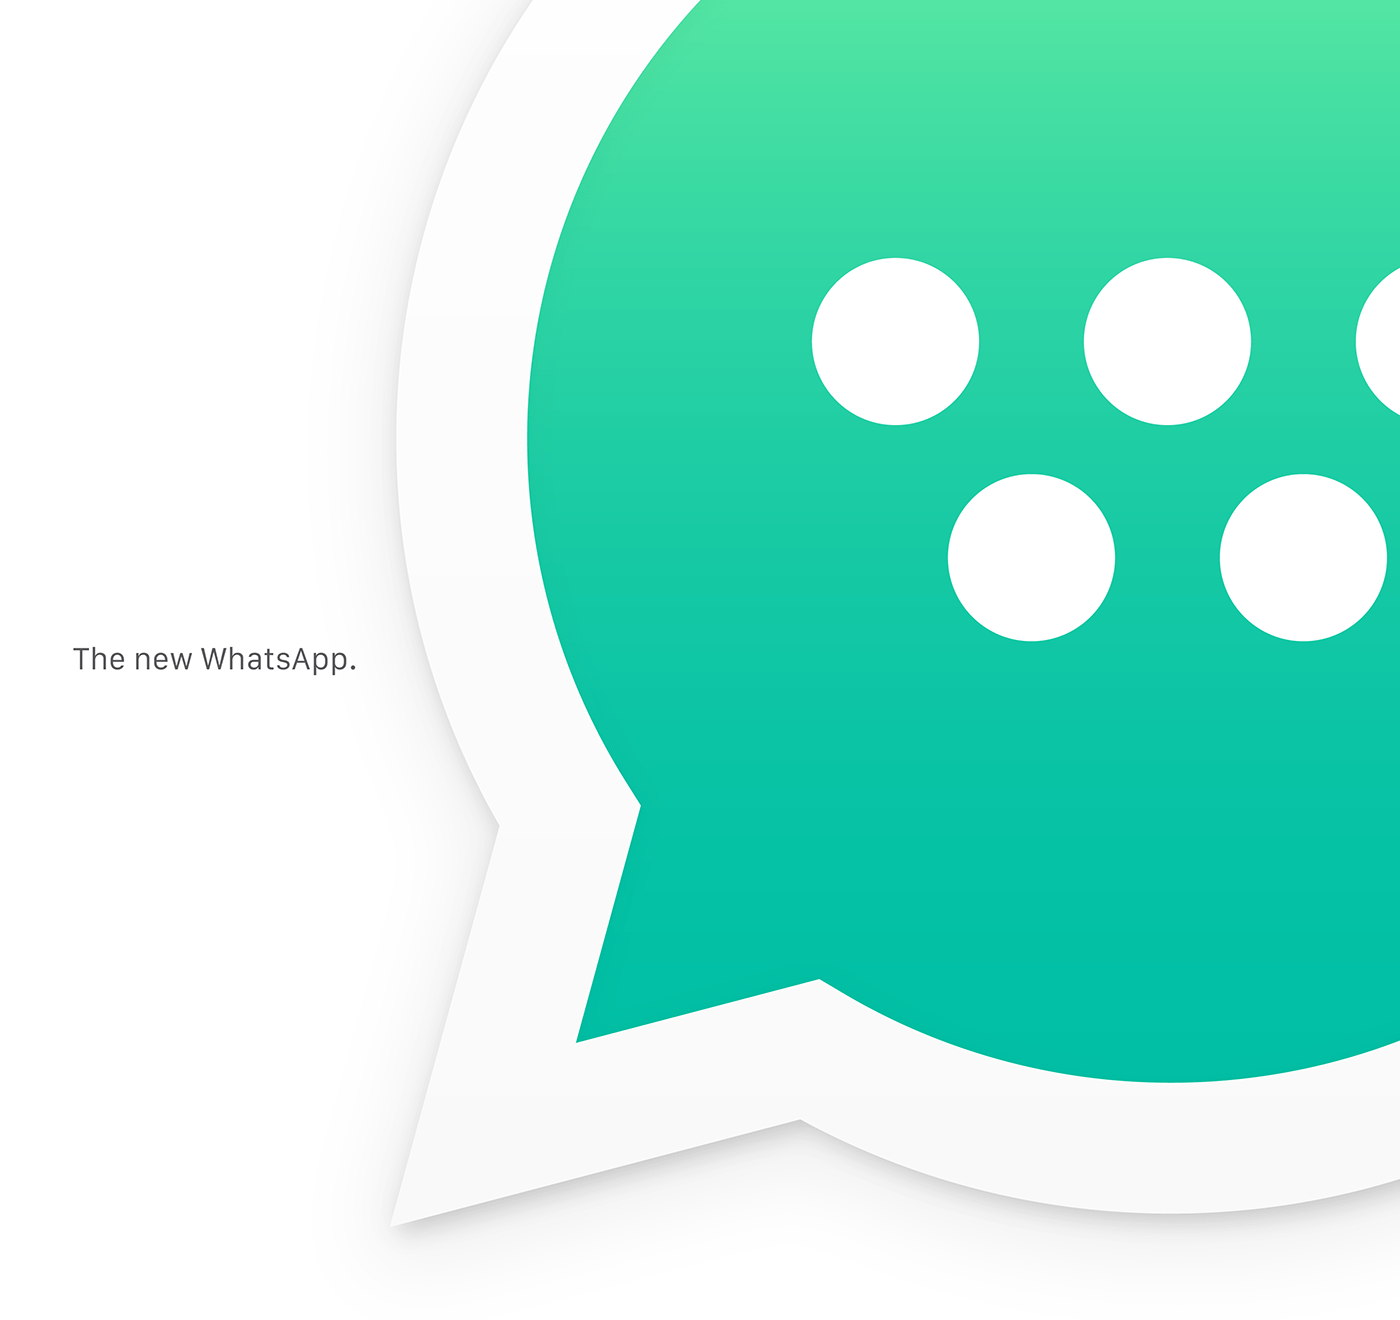 The new WhatsApp on Behance Since 2009 WhatsApp is the service that has connected thousands of people  around the world  Billions of messages exchanged  many conversations